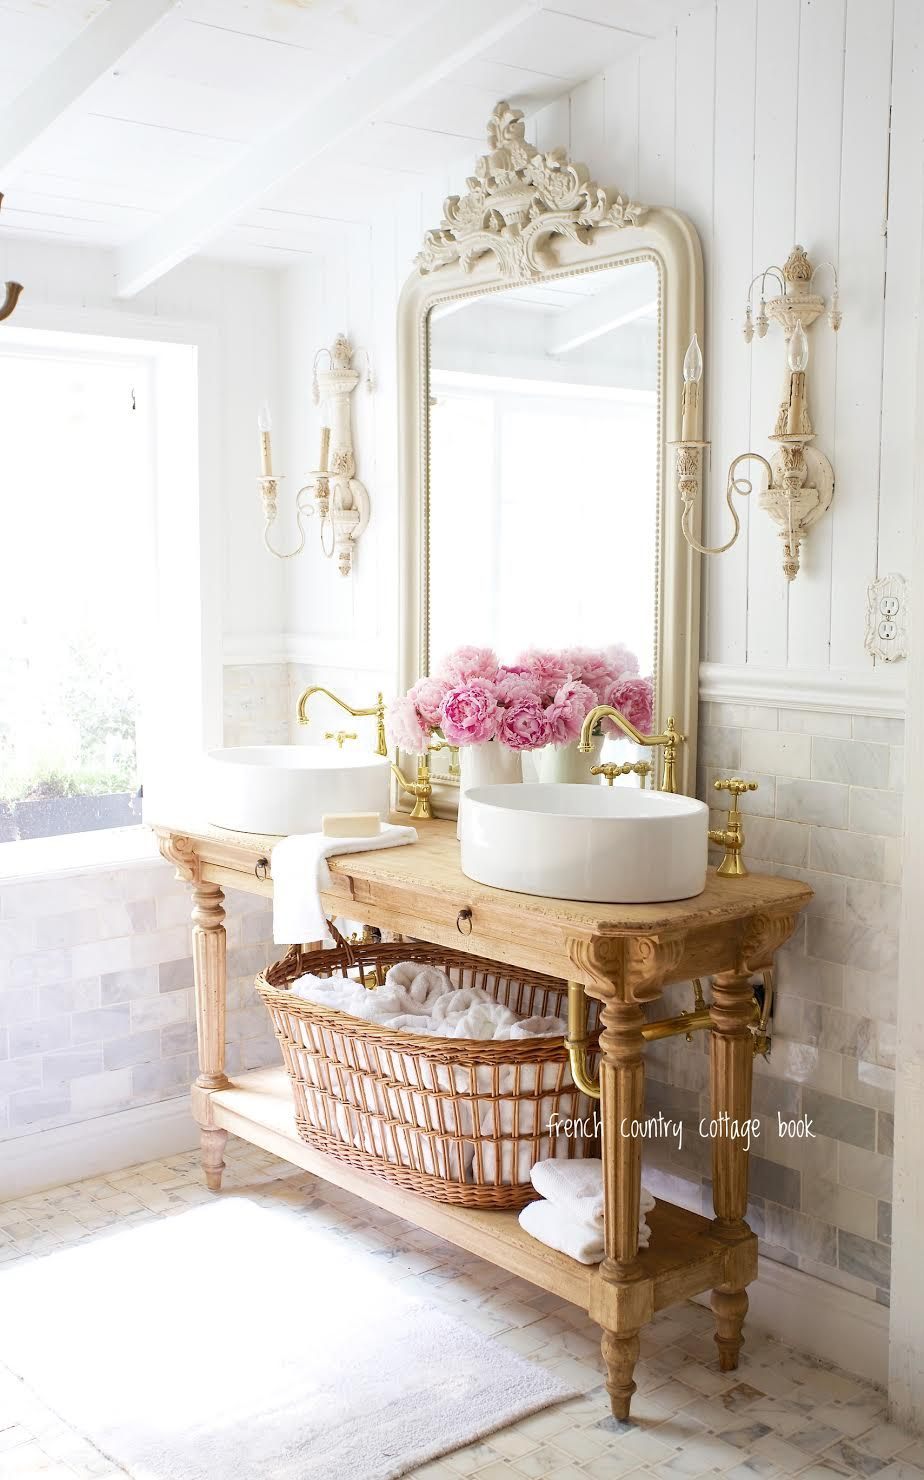 5 Minute Decorating Five Ways To Style Your Bathroom For Summer